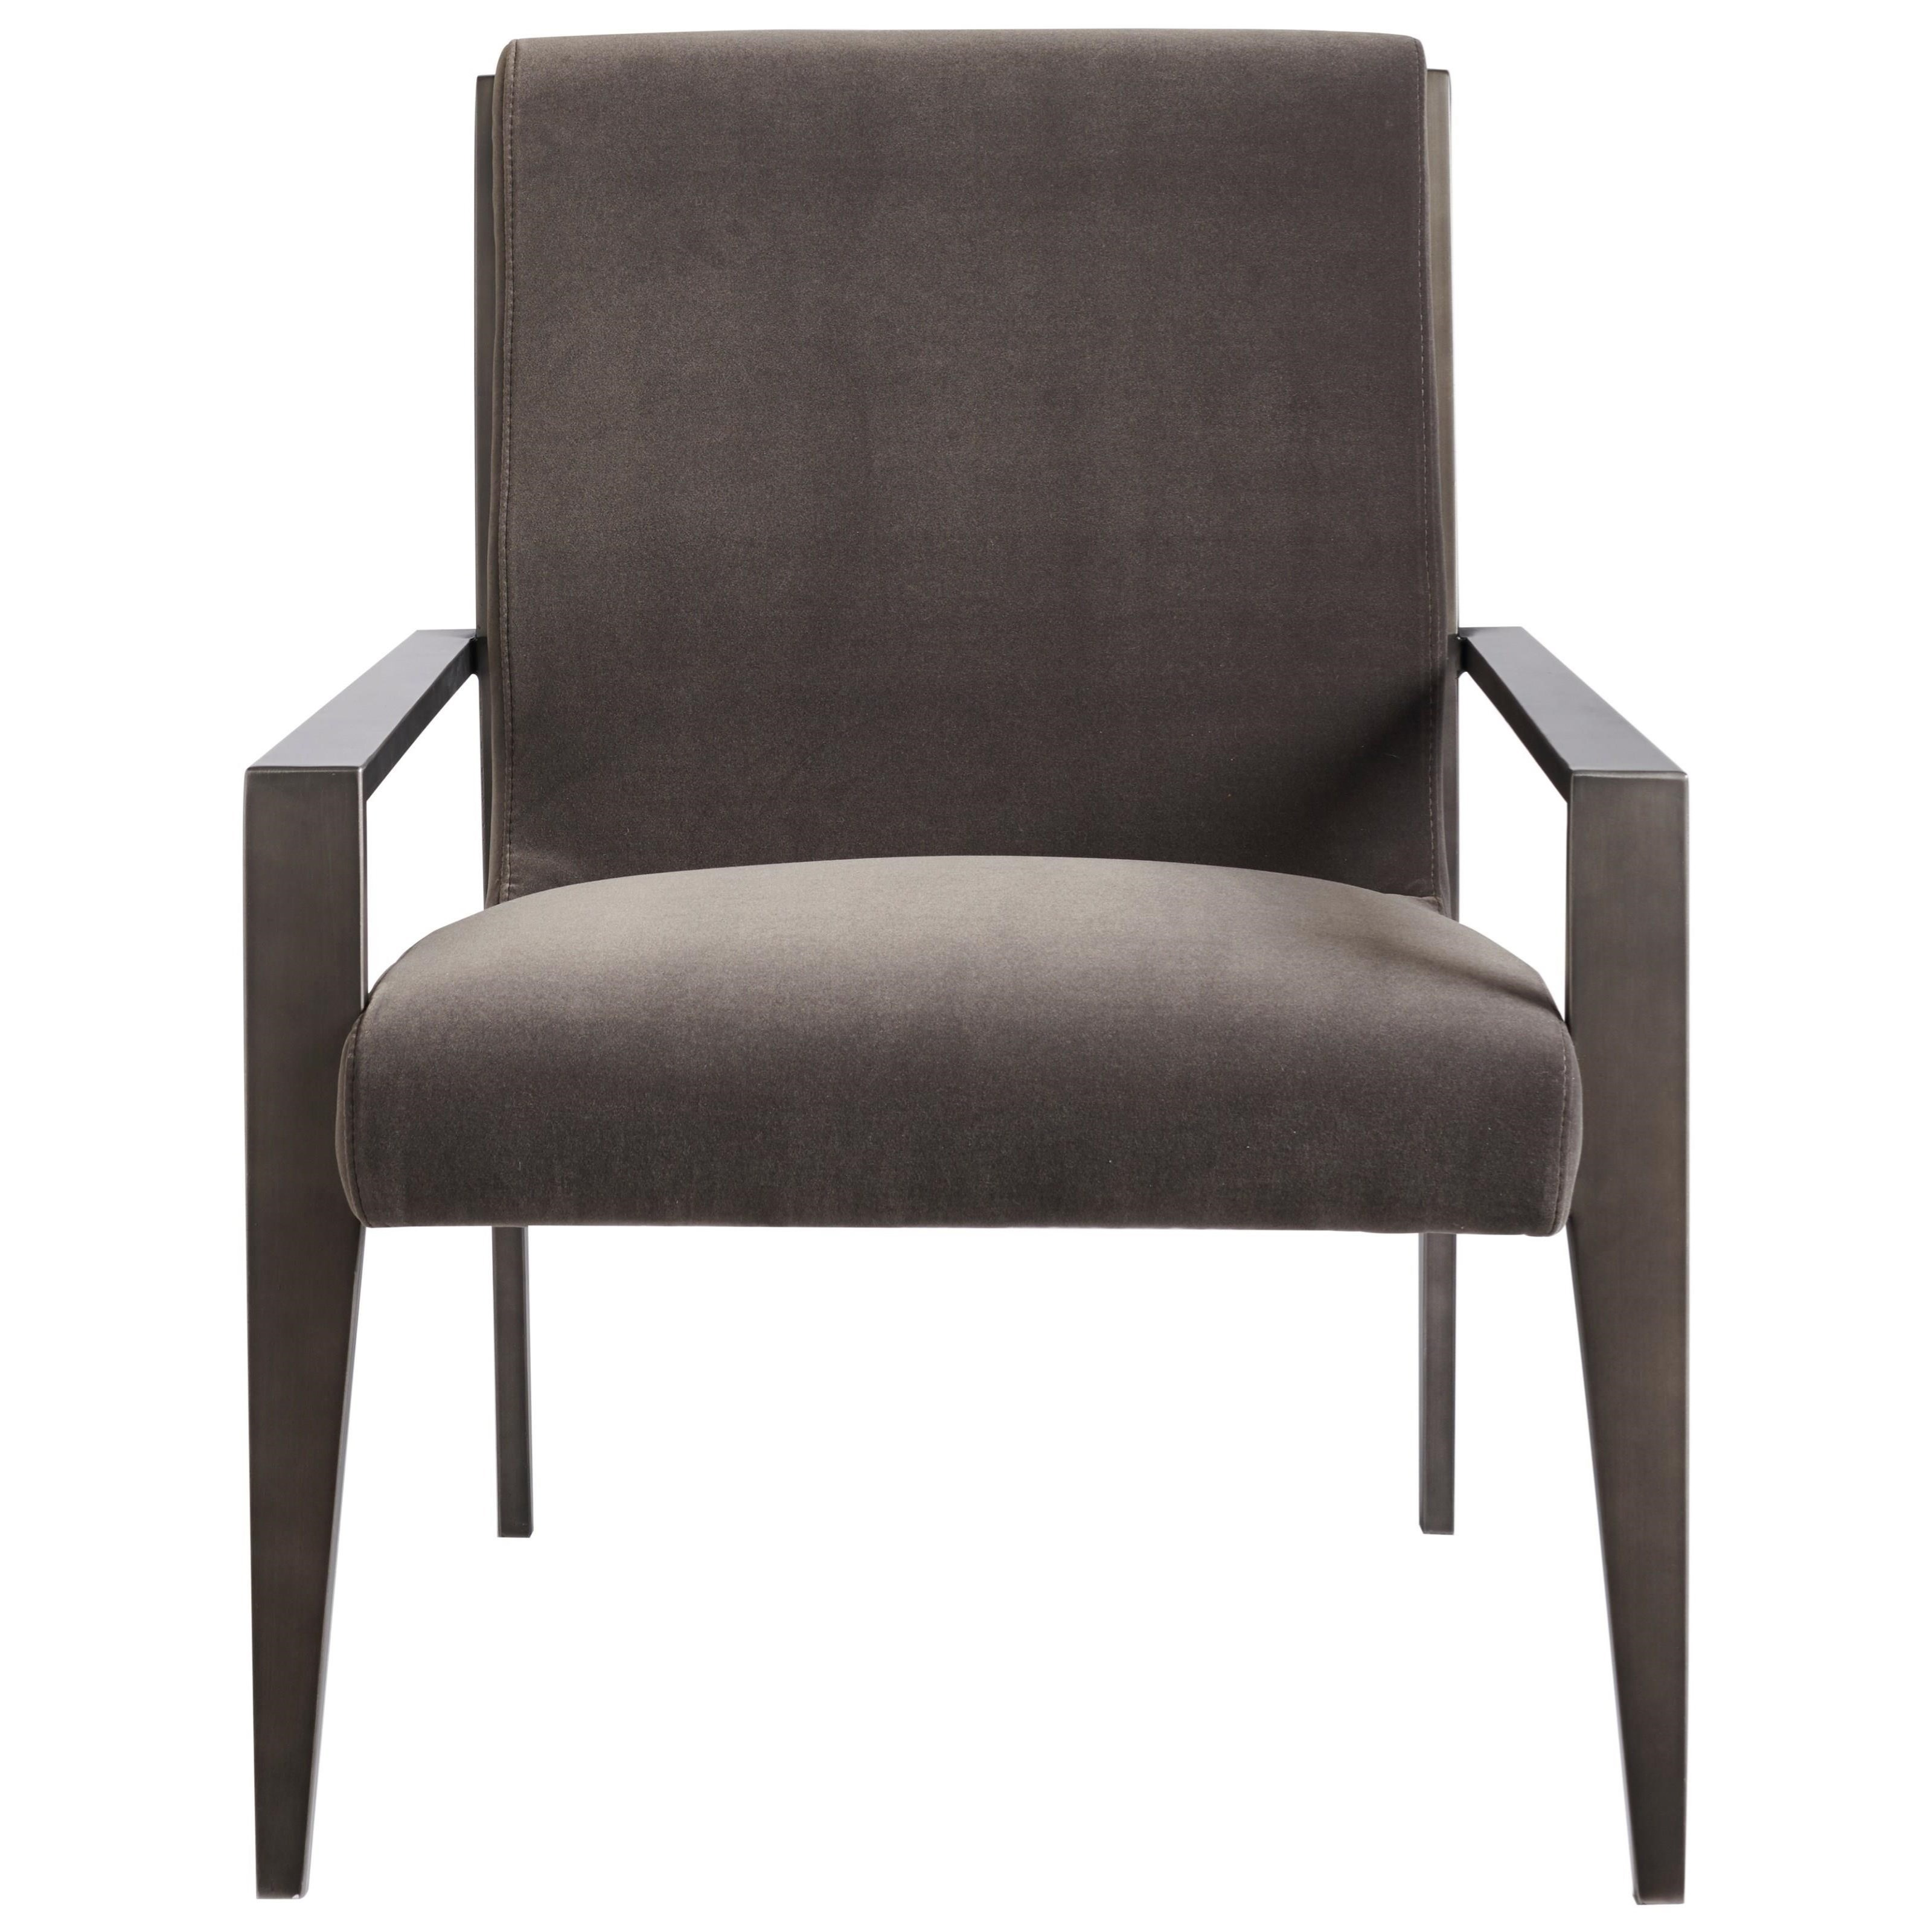 Nina Magon Mangold Accent Chair by Universal at Jacksonville Furniture Mart